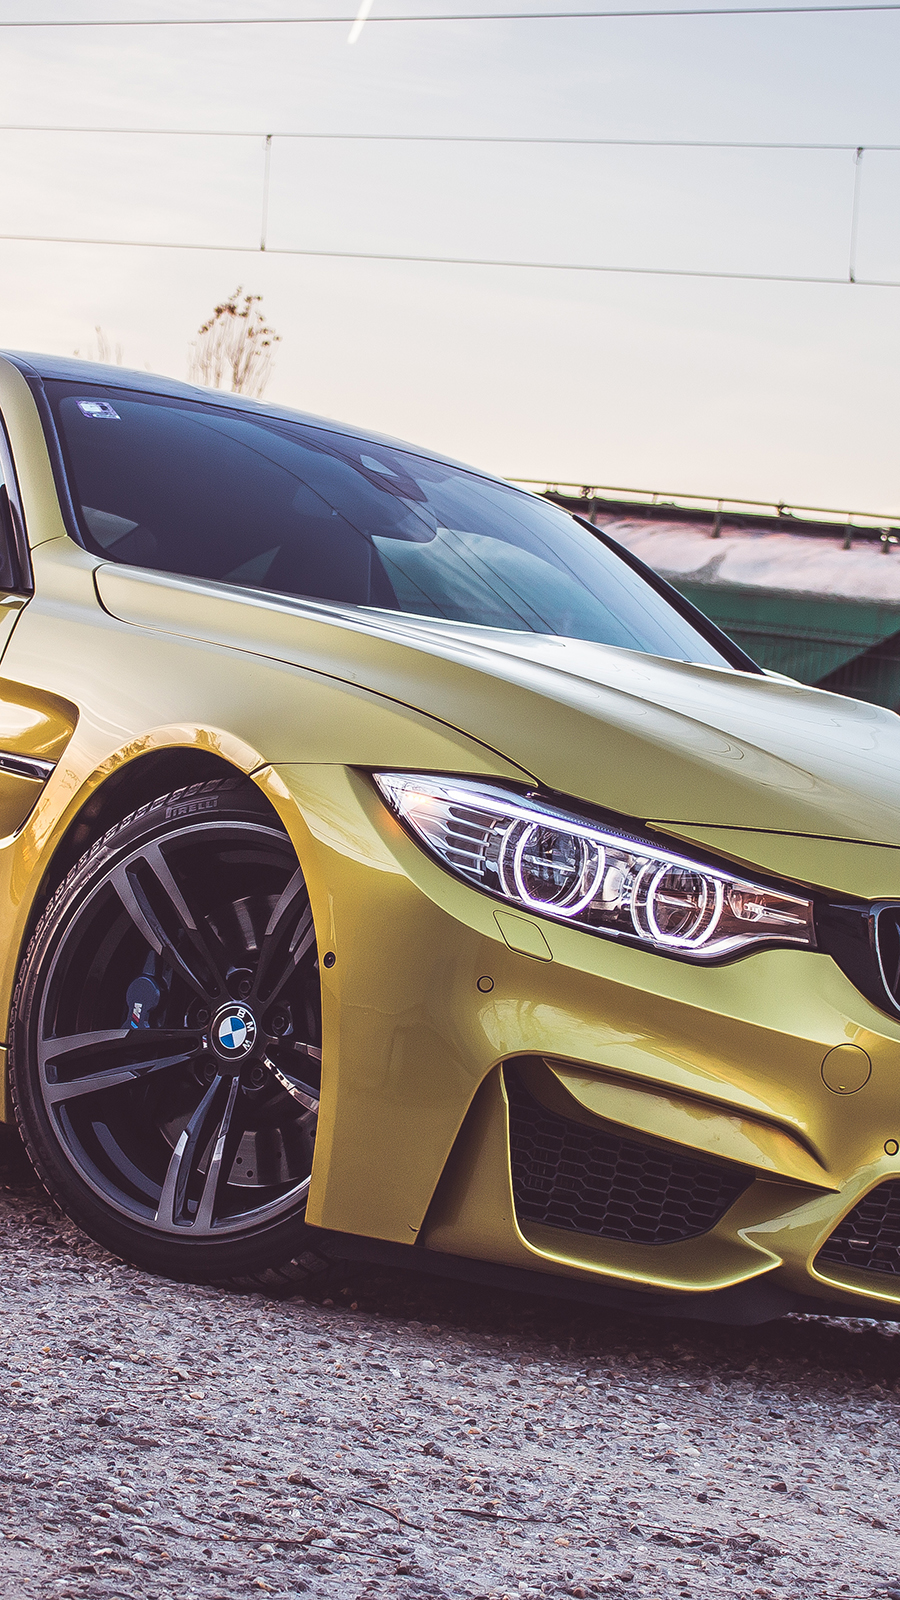 BMW M3 Super Sports 8K Background Wallpapers